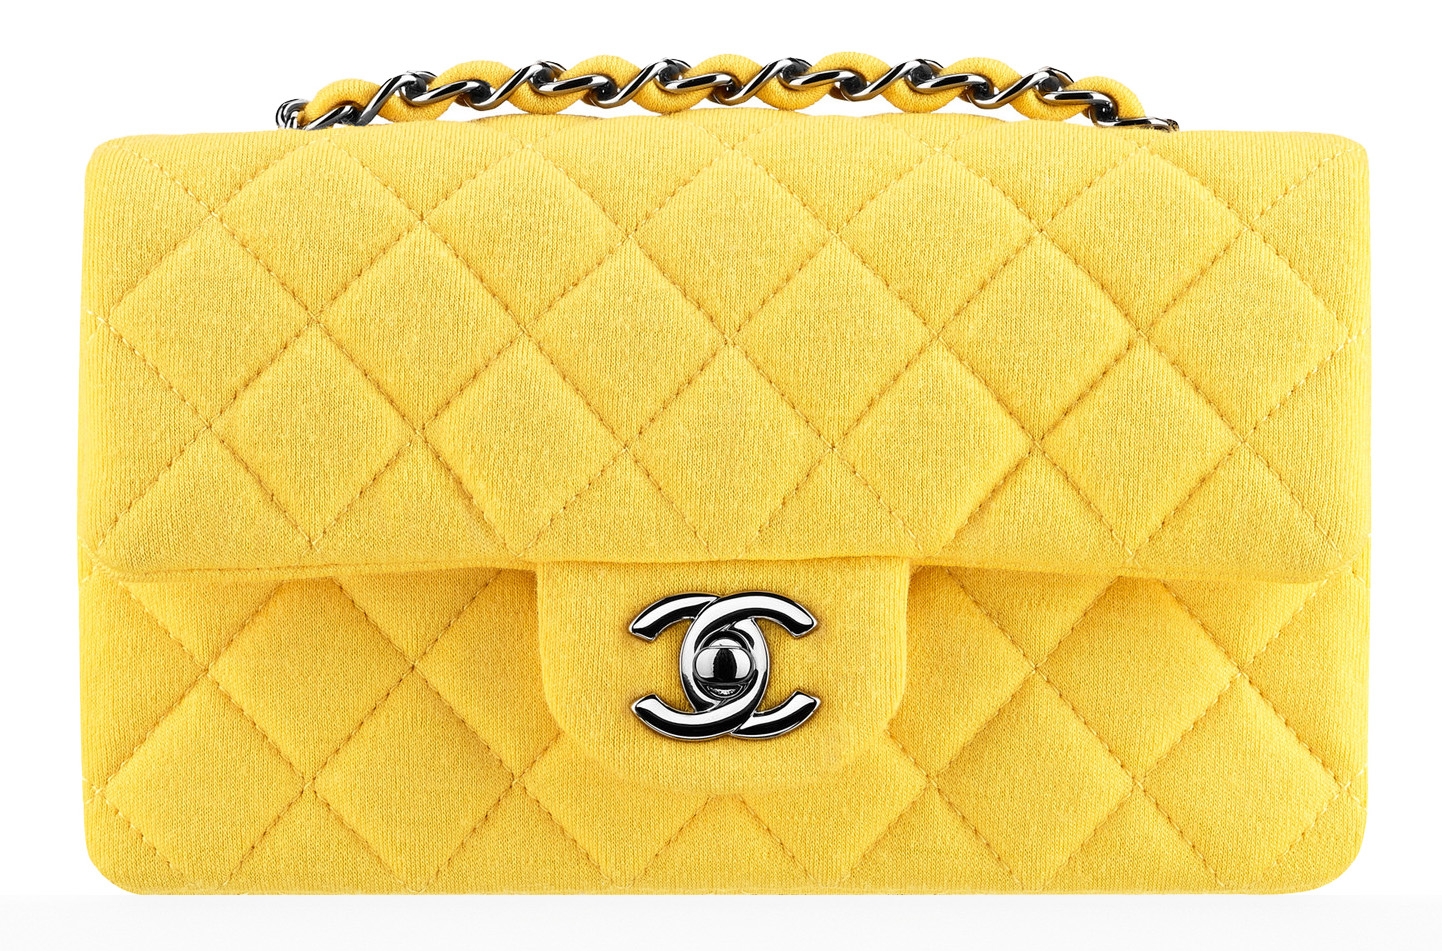 Chanel Small Jersey Classic Flap Bag Yellow